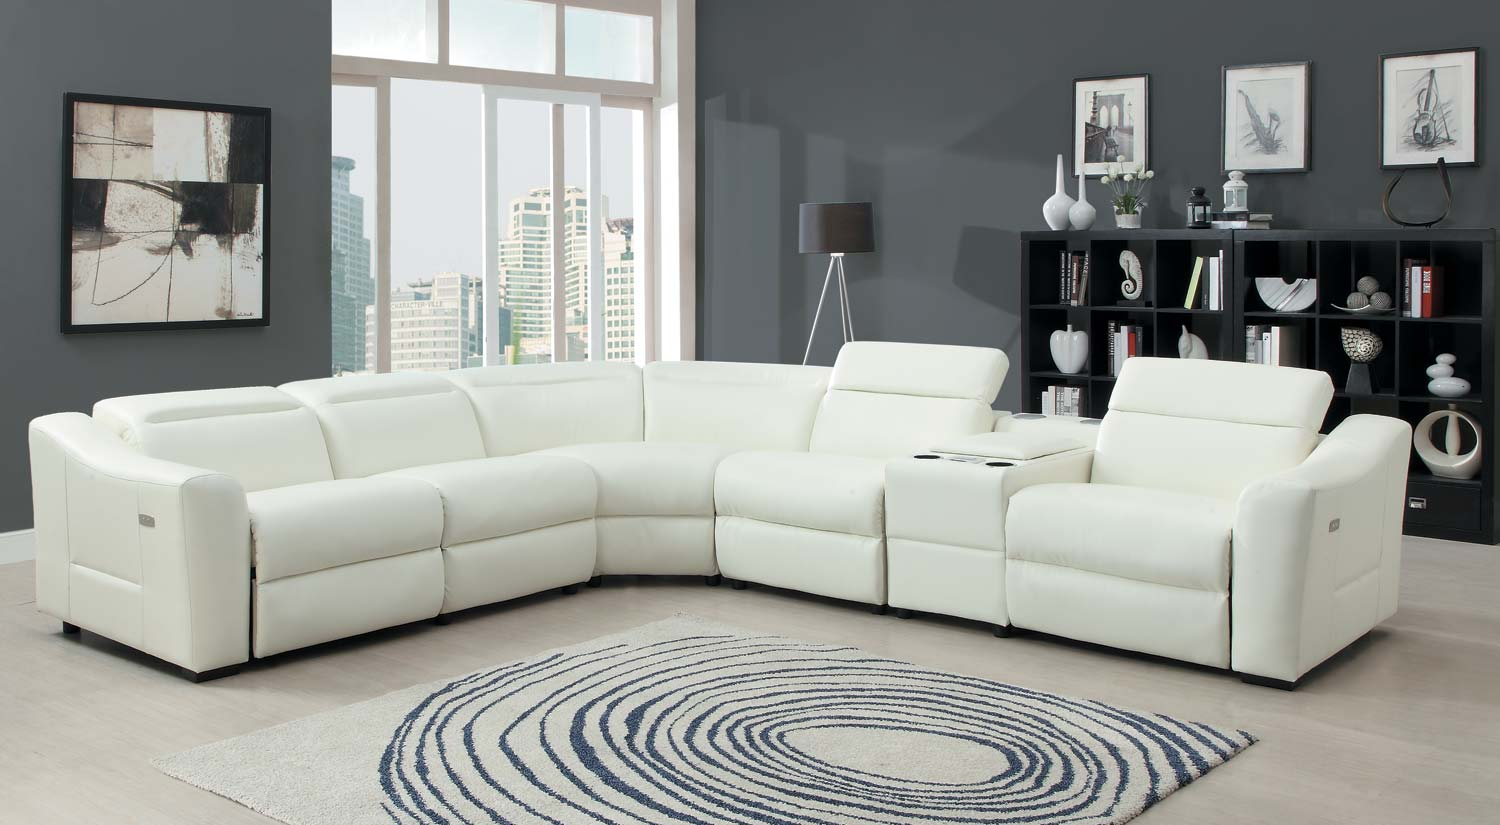 Homelegance Instrumental Sectional Sofa Set White Bonded Leather Match U9623 Sect: italienische sofa